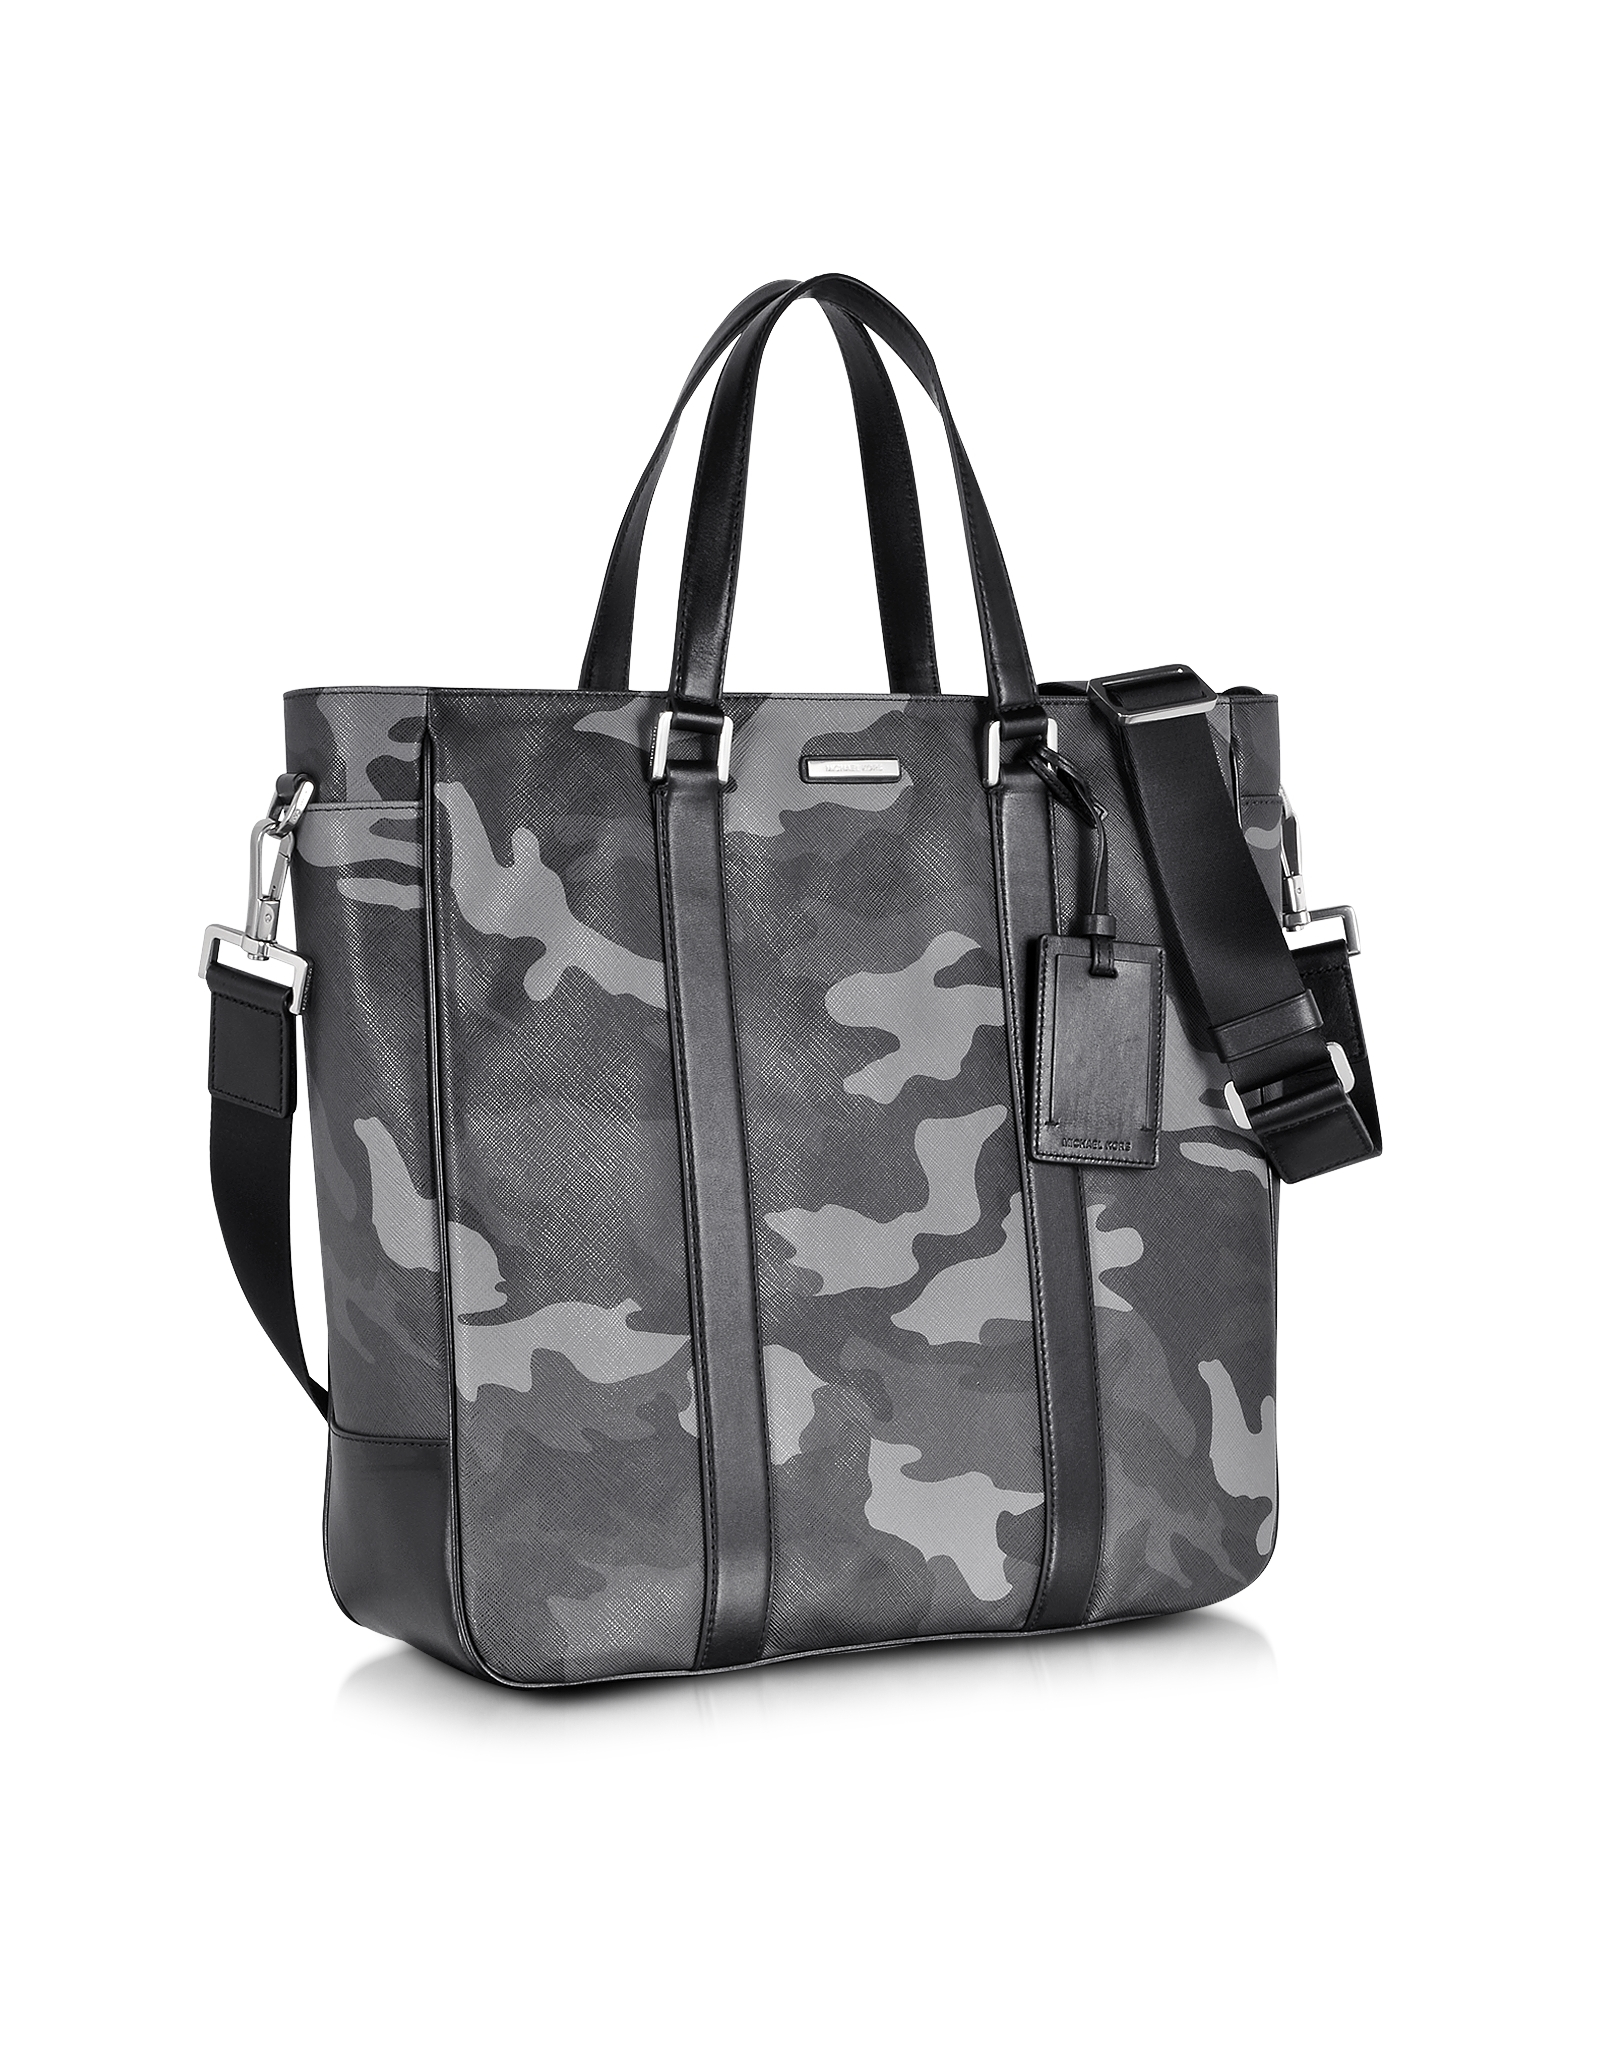 ae61b19ae016 Michael Kors Large Jet Set Men'S Camo Eco Leather Tote in Gray for ...